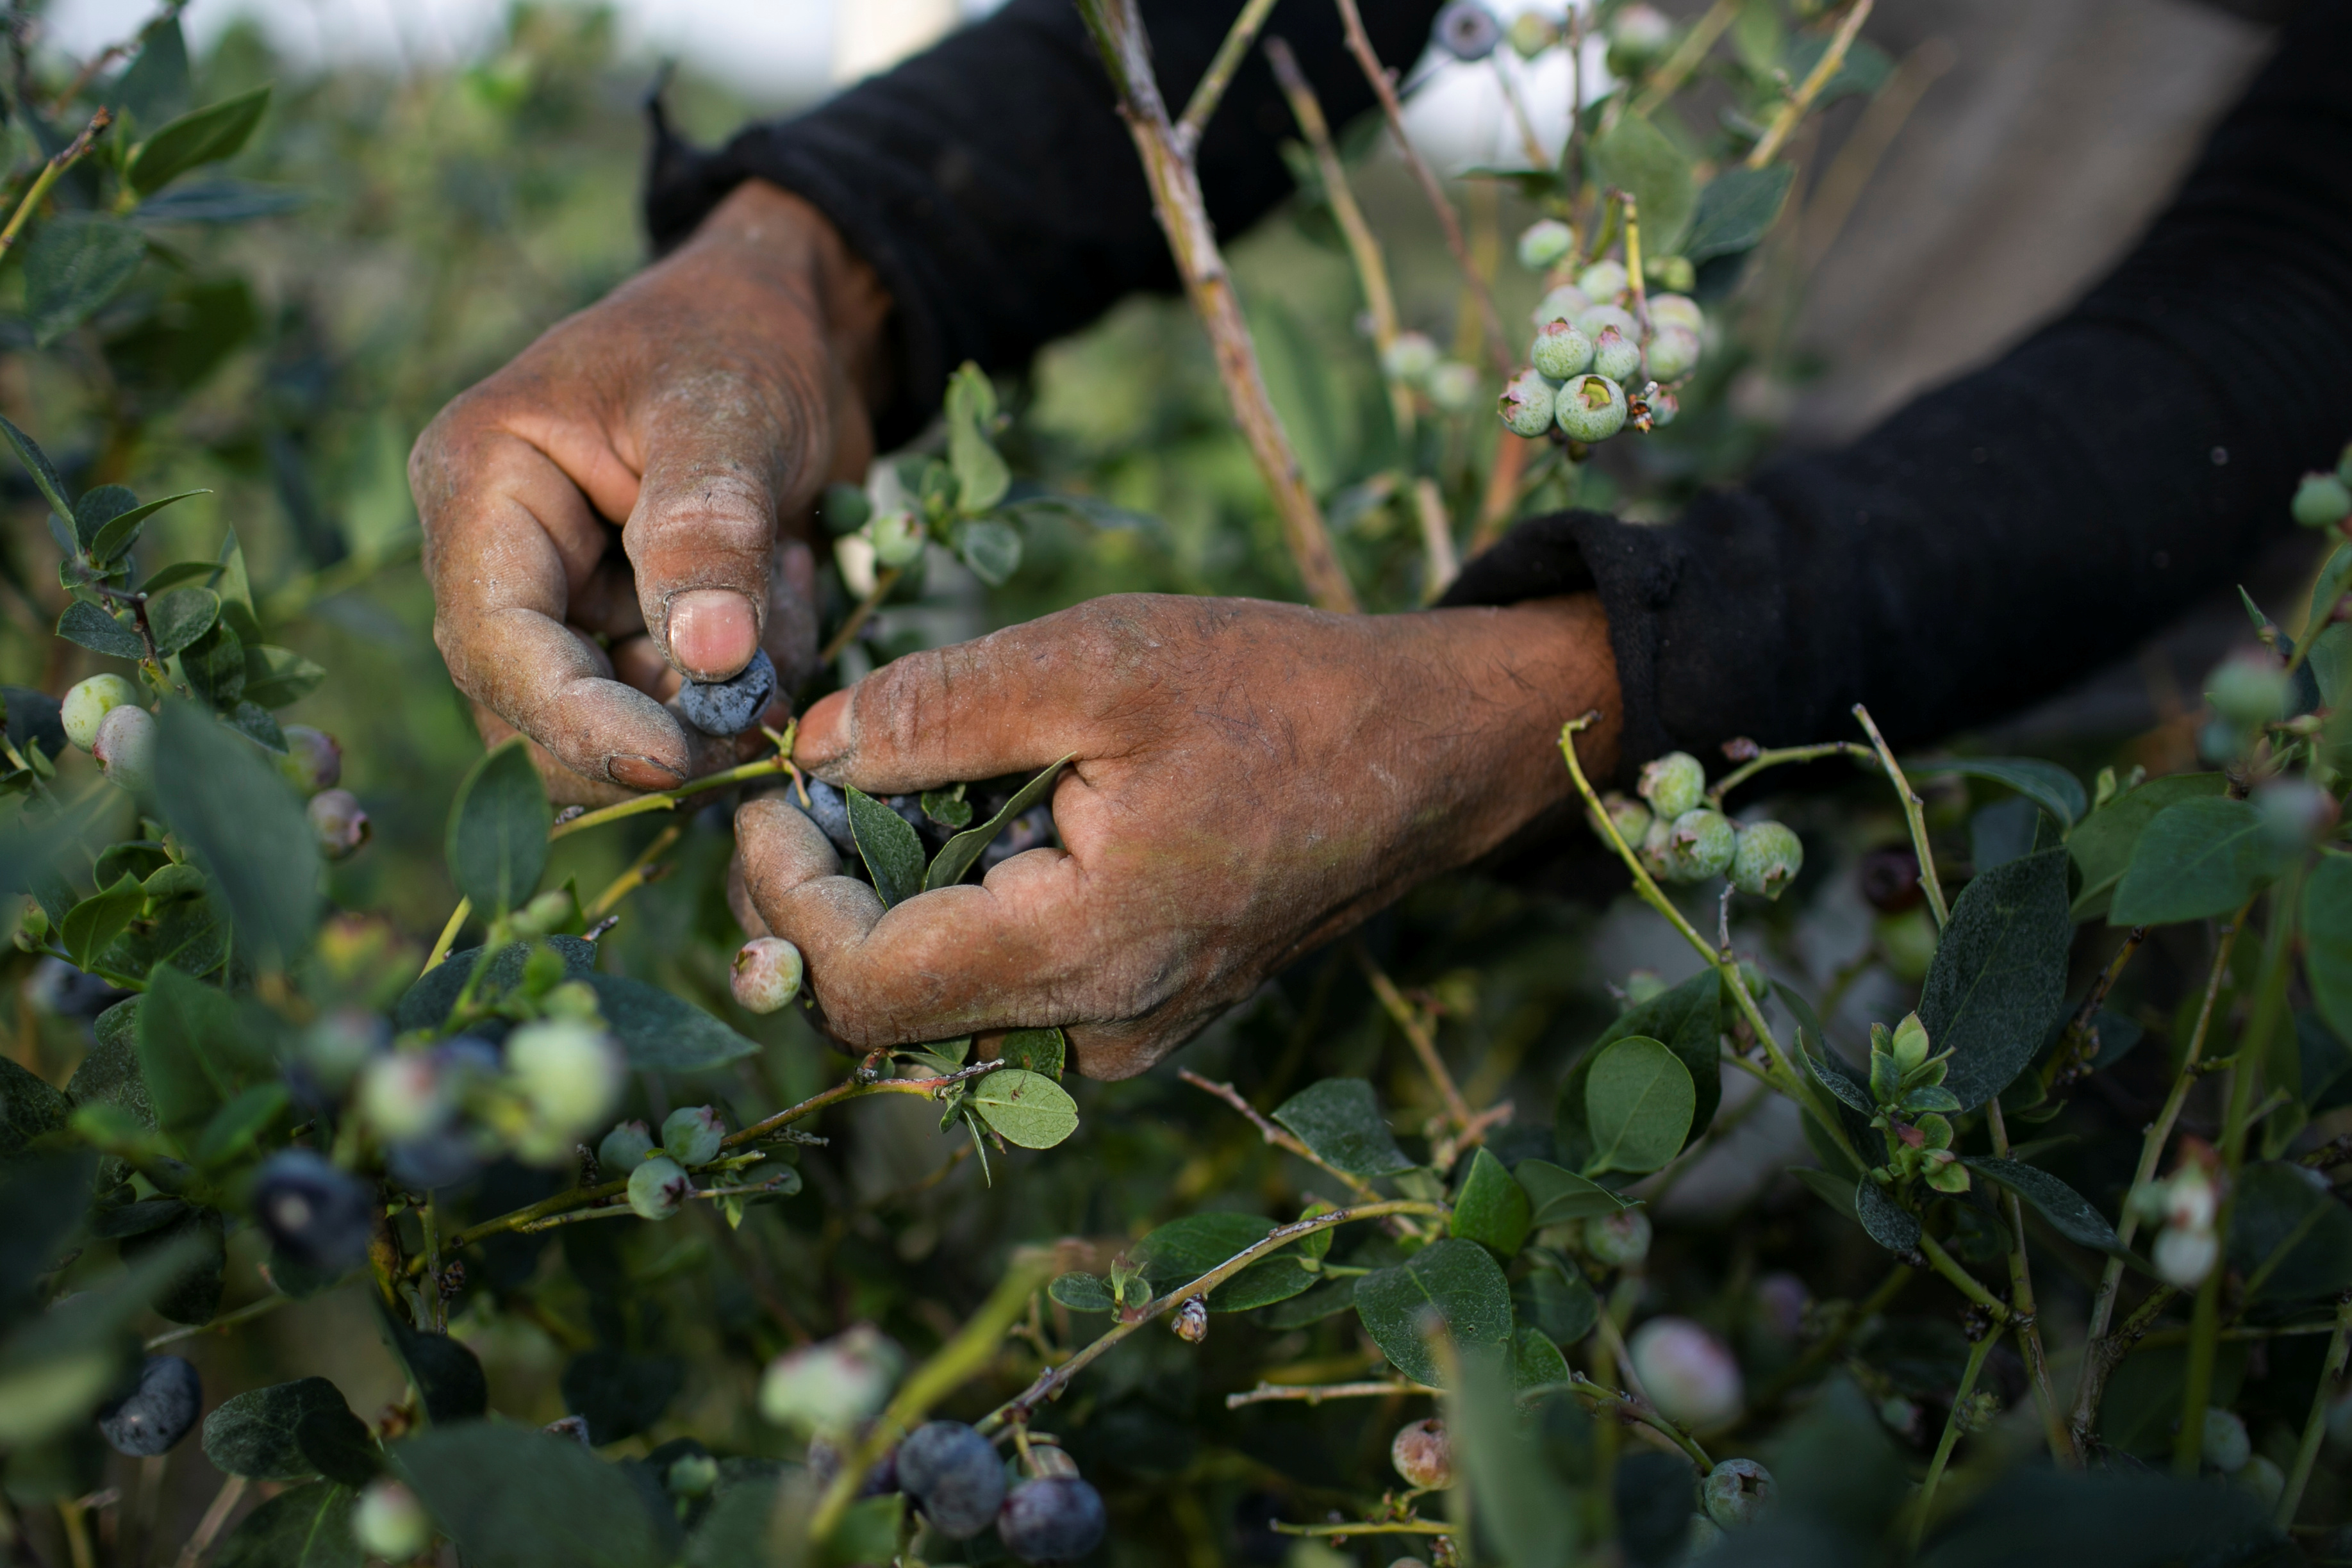 A Mexican migrant worker picks blueberries during a harvest at a farm in Lake Wales, Florida, U.S., March 31, 2020. REUTERS/Marco Bello